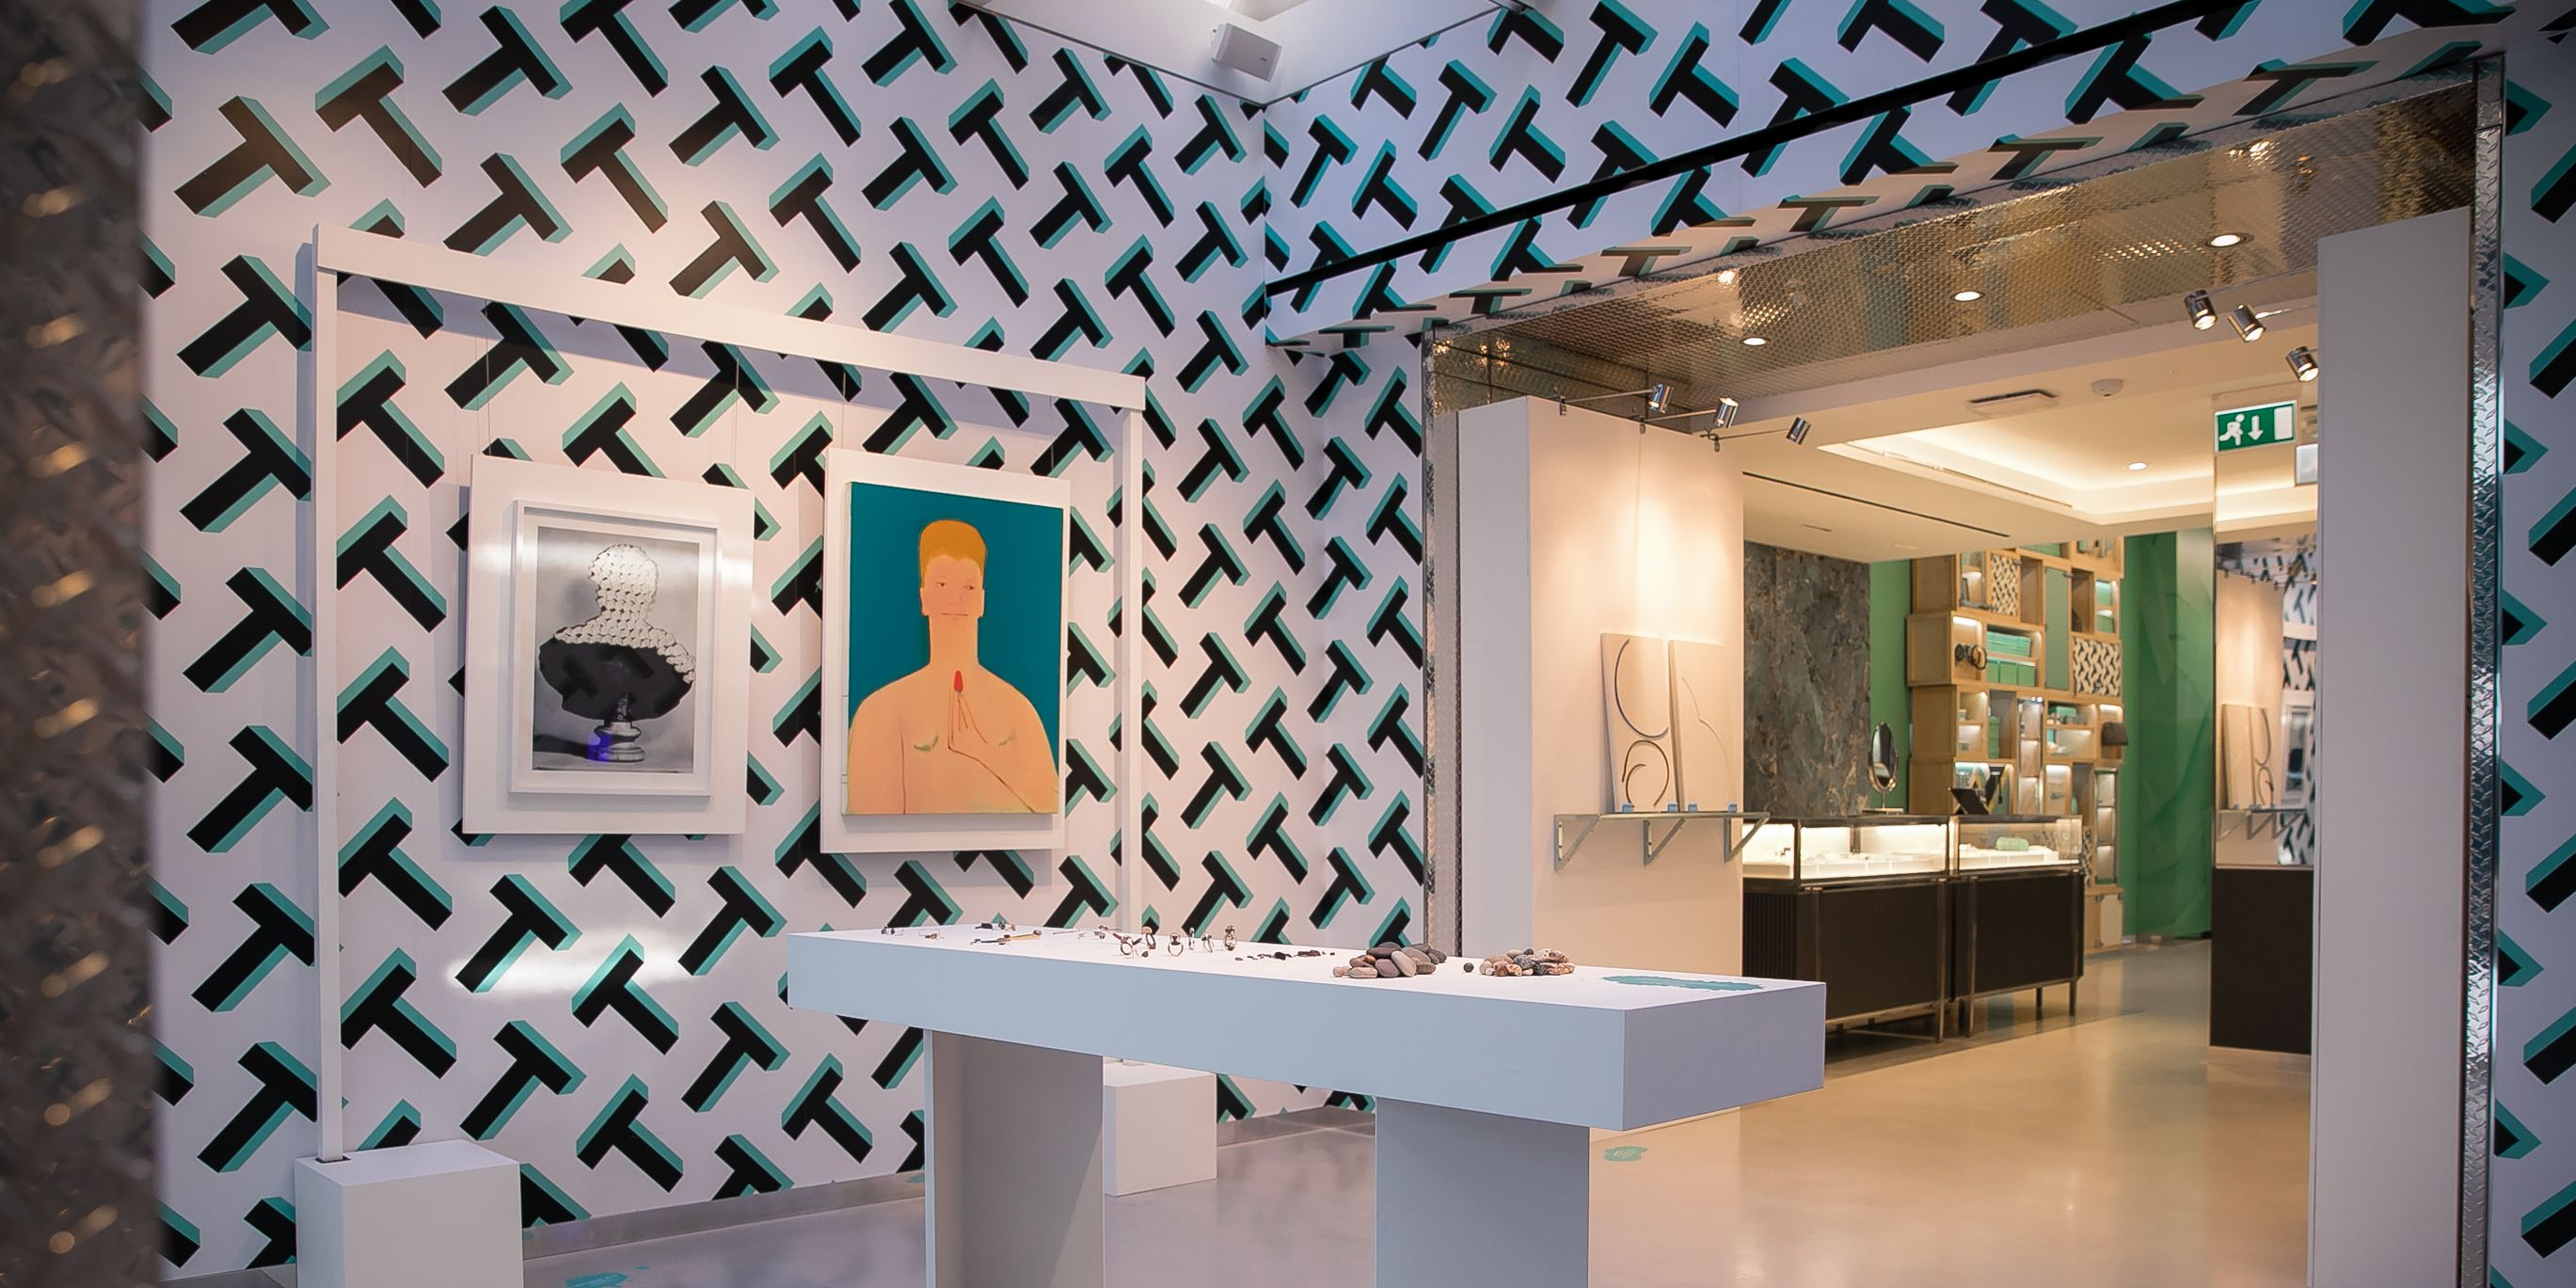 Tiffany & Co Studiomakers Prize exhibition